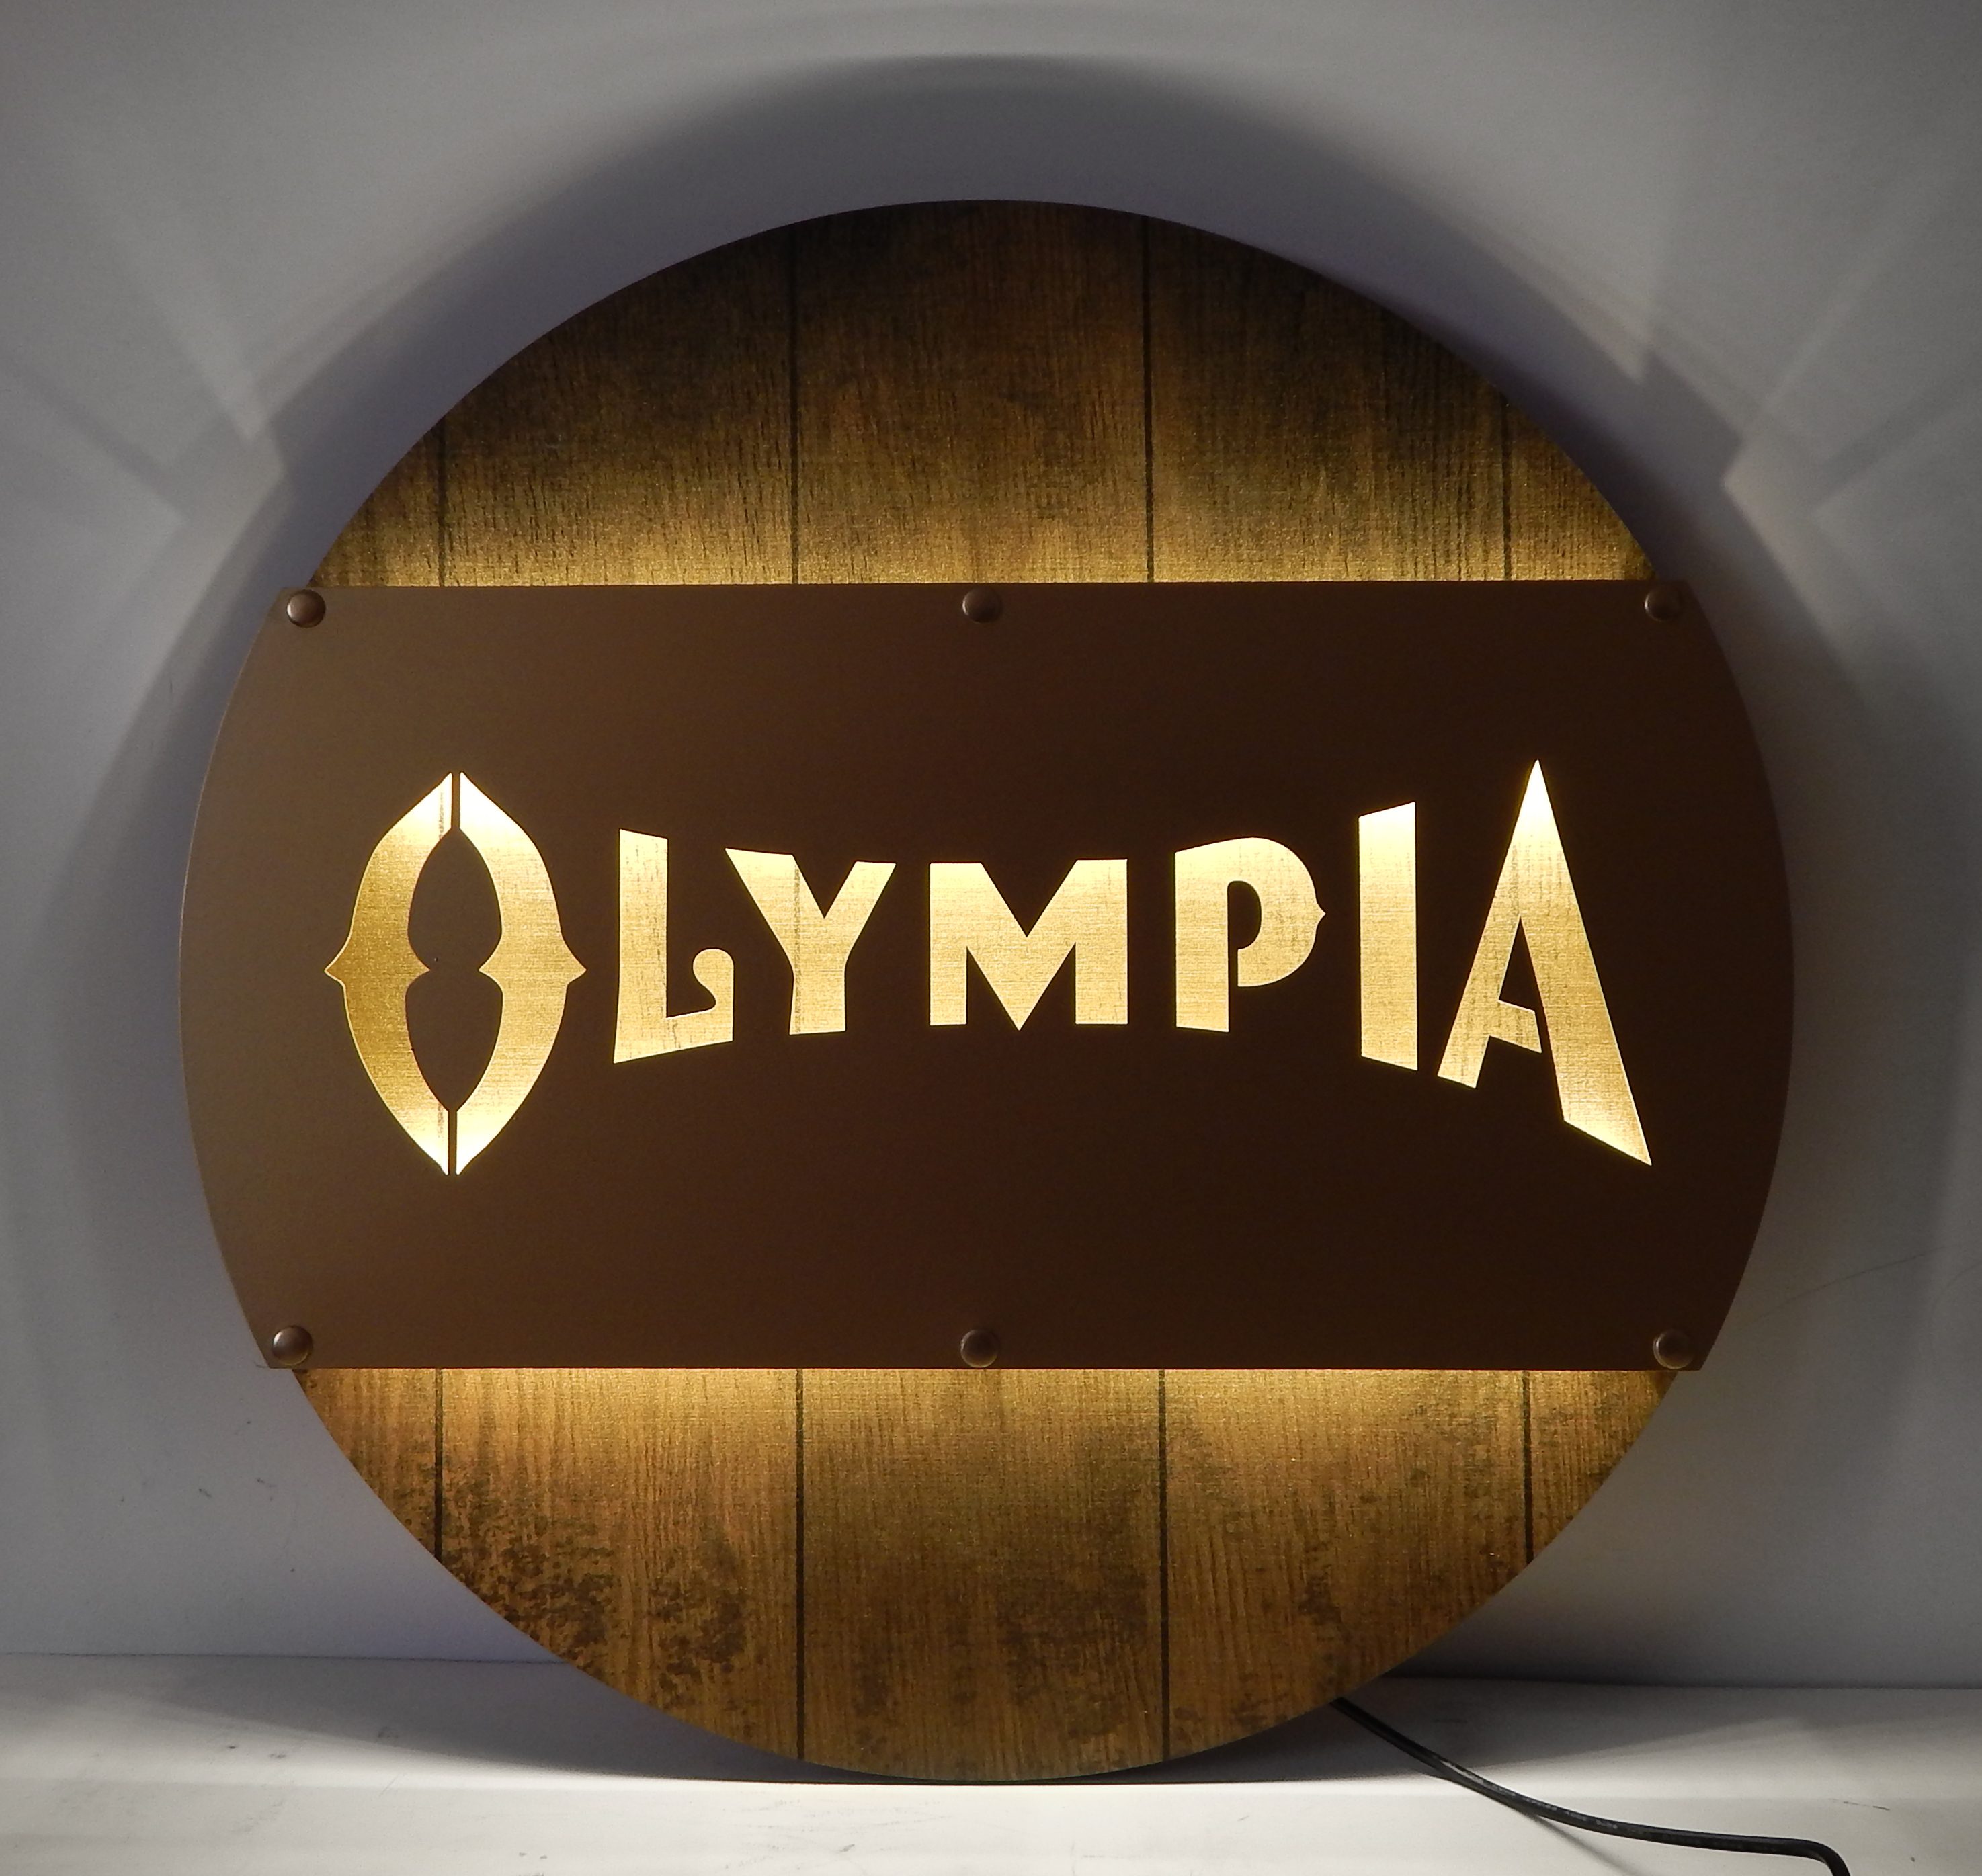 Olympia LED Metal Barrel Sign